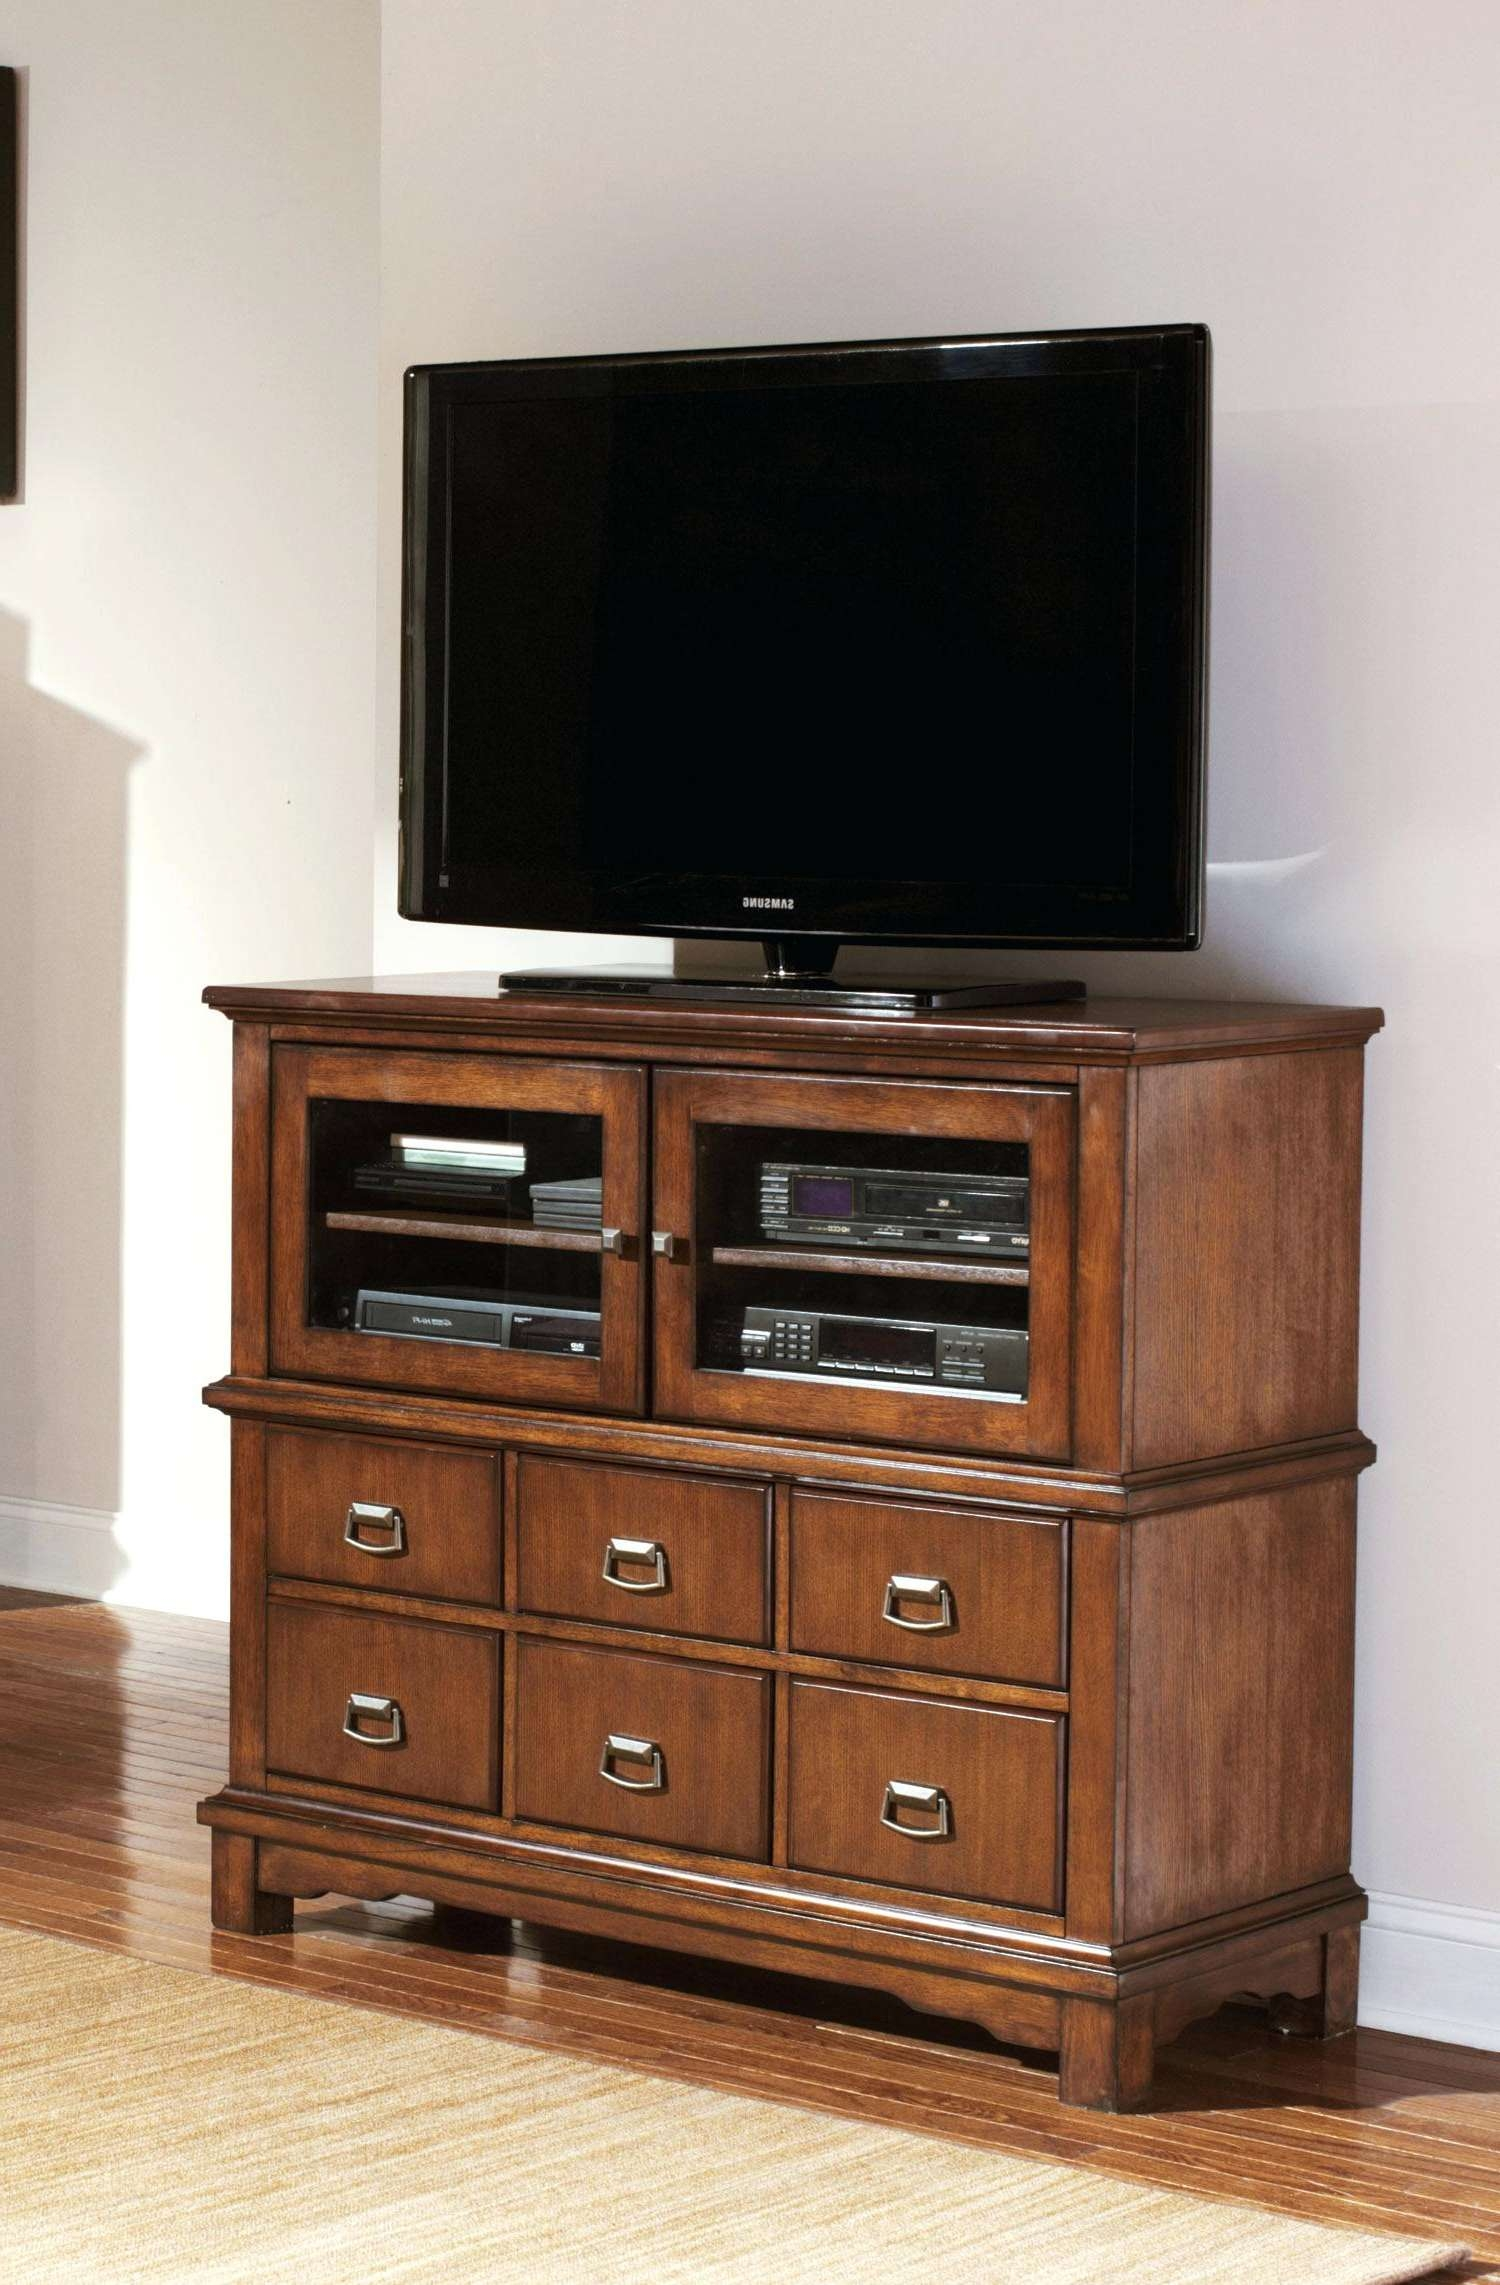 Tall Corner Media Stands Cabinet Espresso Storage Glass Door And Intended For Corner Tv Stands With Drawers (View 11 of 15)